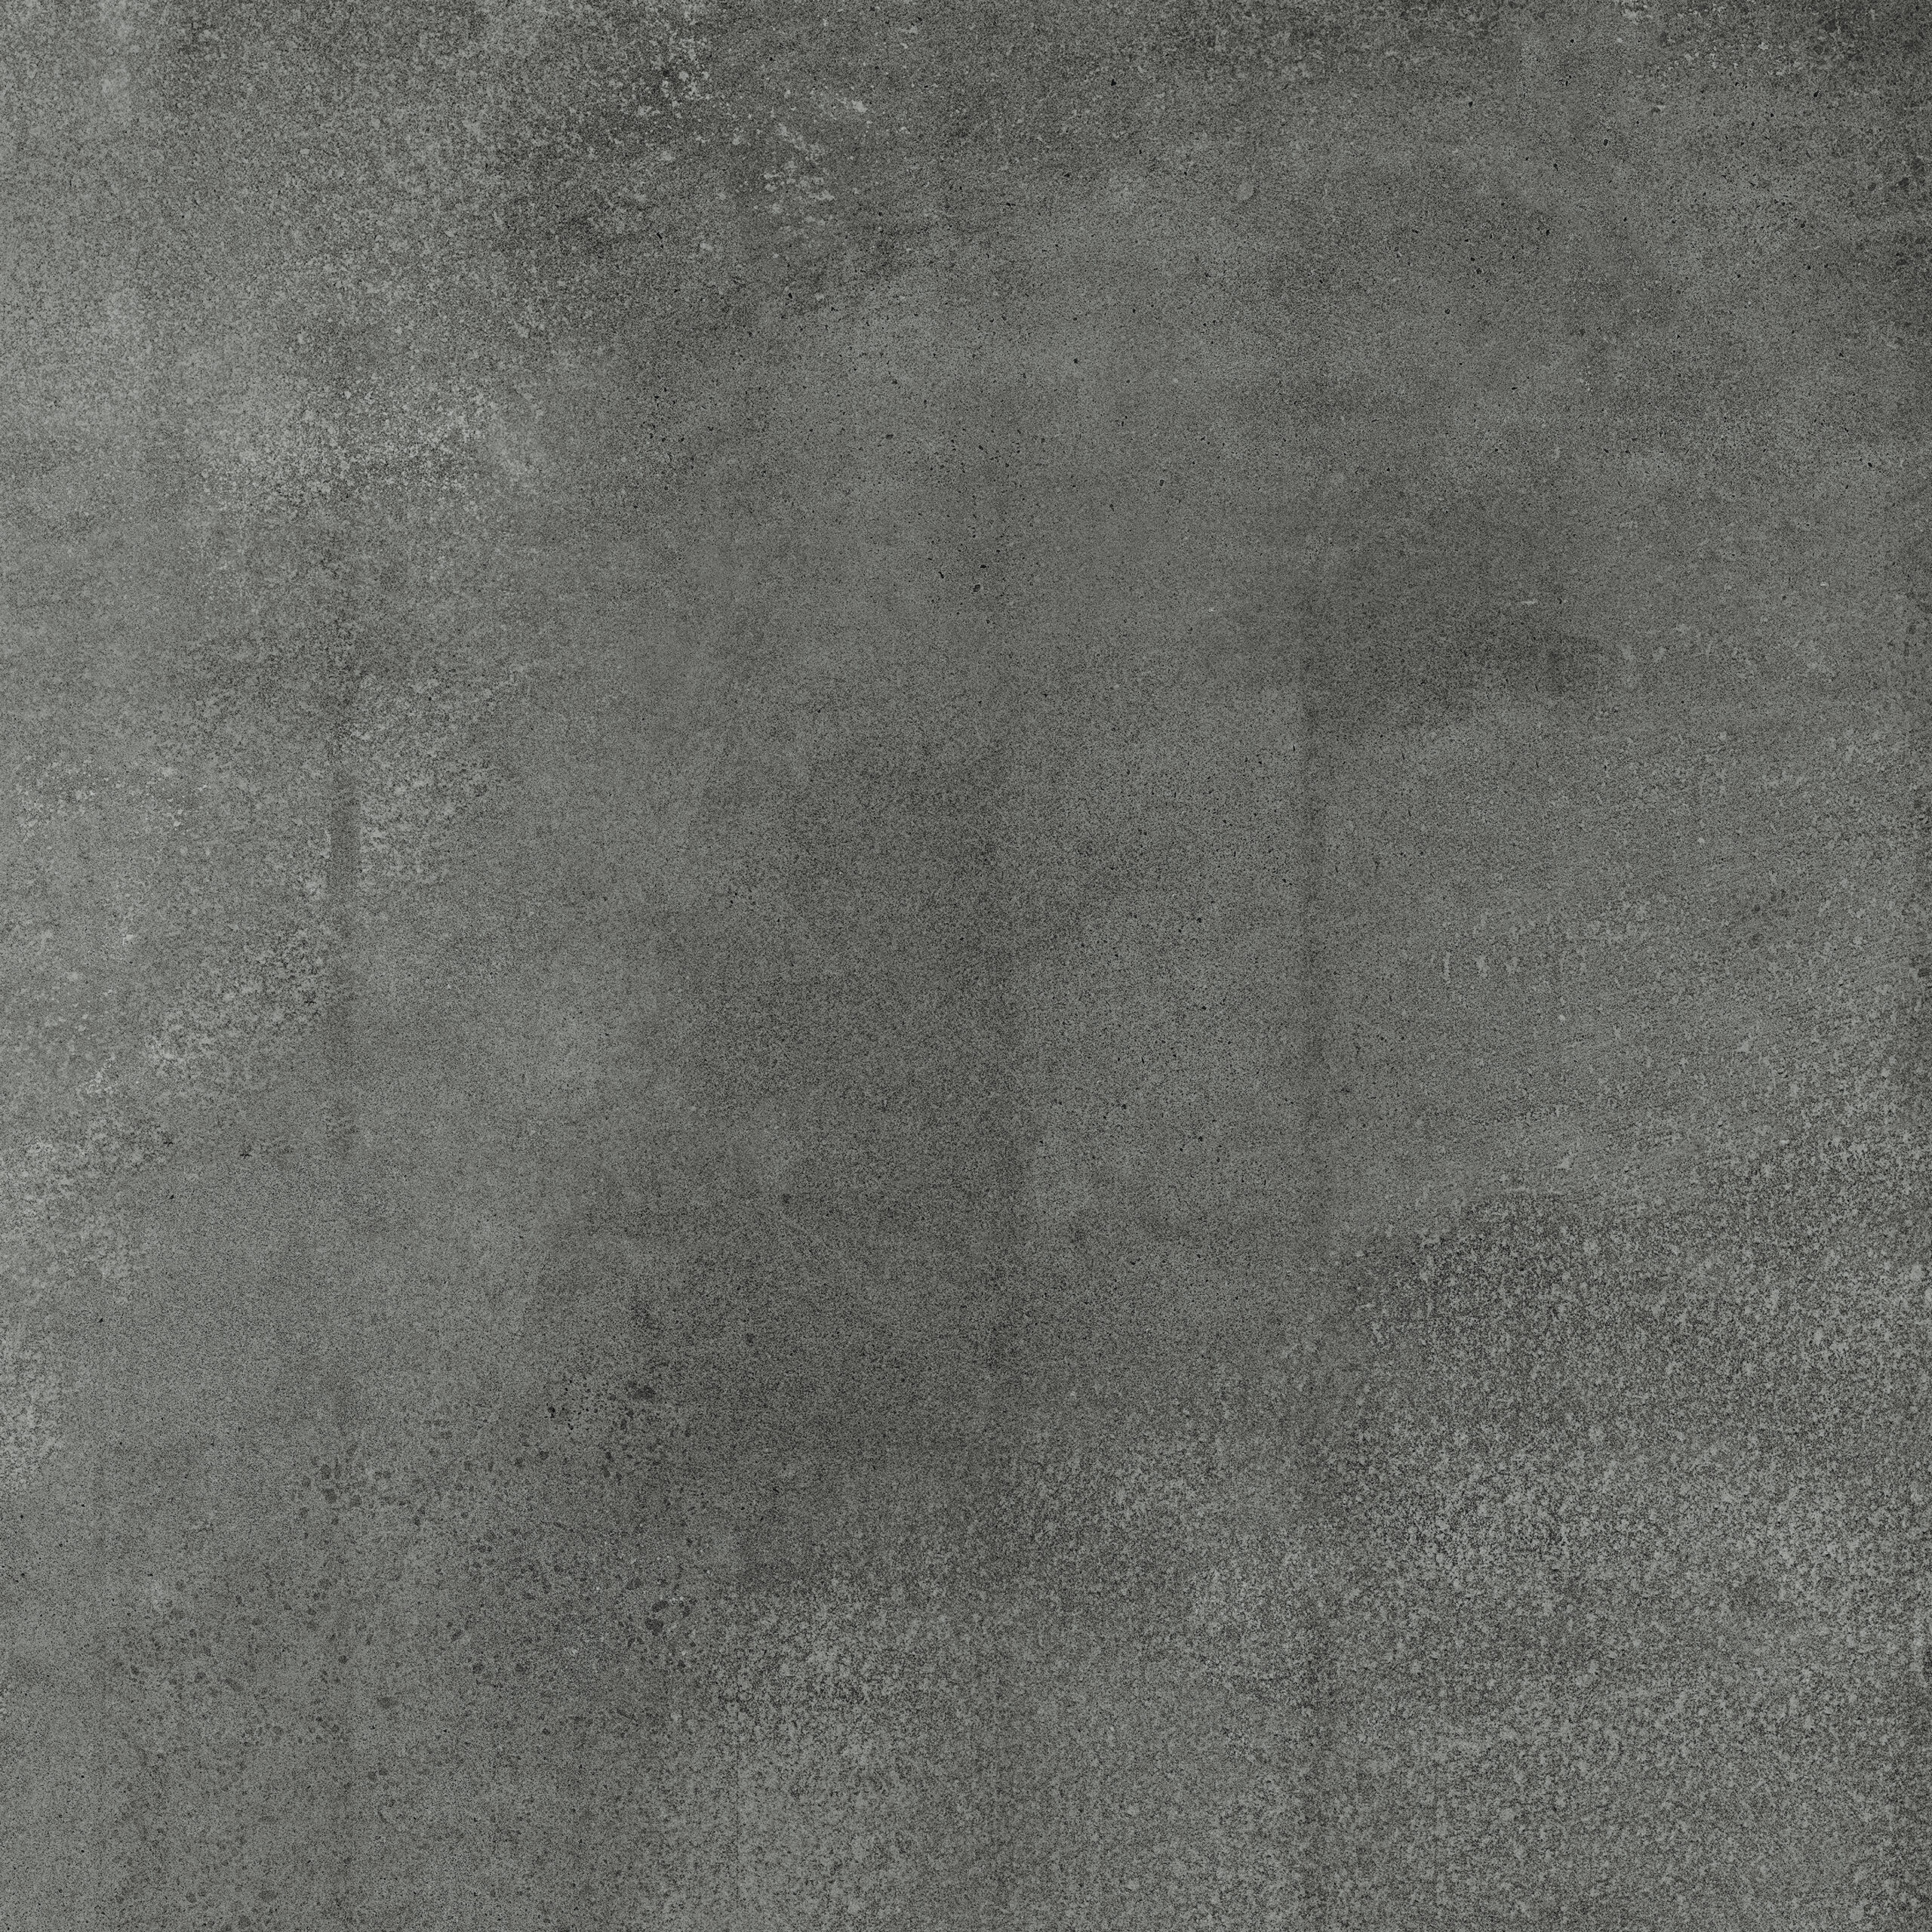 68 318 32x32 Industria Graphite HD Rectified Porcelain Tile scaled